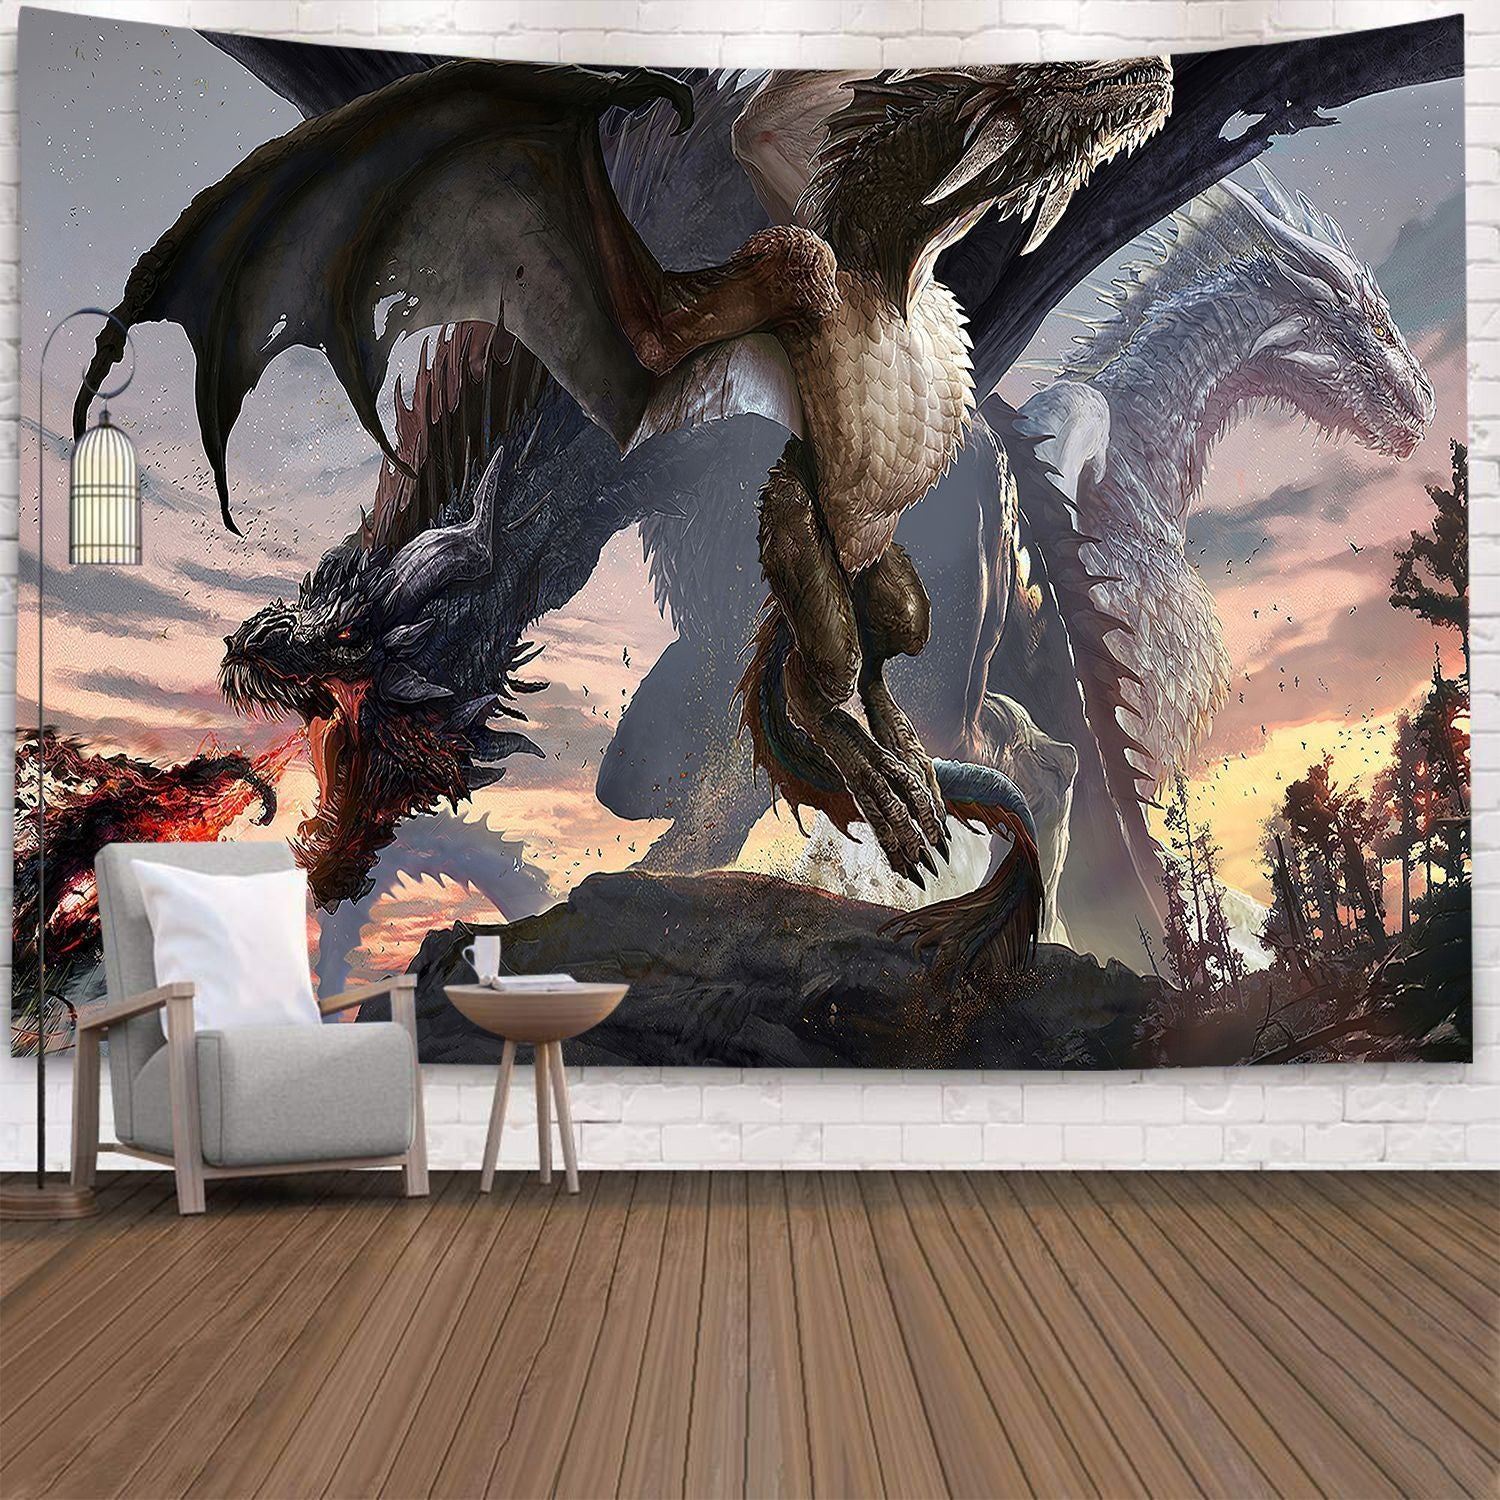 Dragon Tapestry Wall Hanging Tapestry Wall Backdrop Room Decoration Tapestry